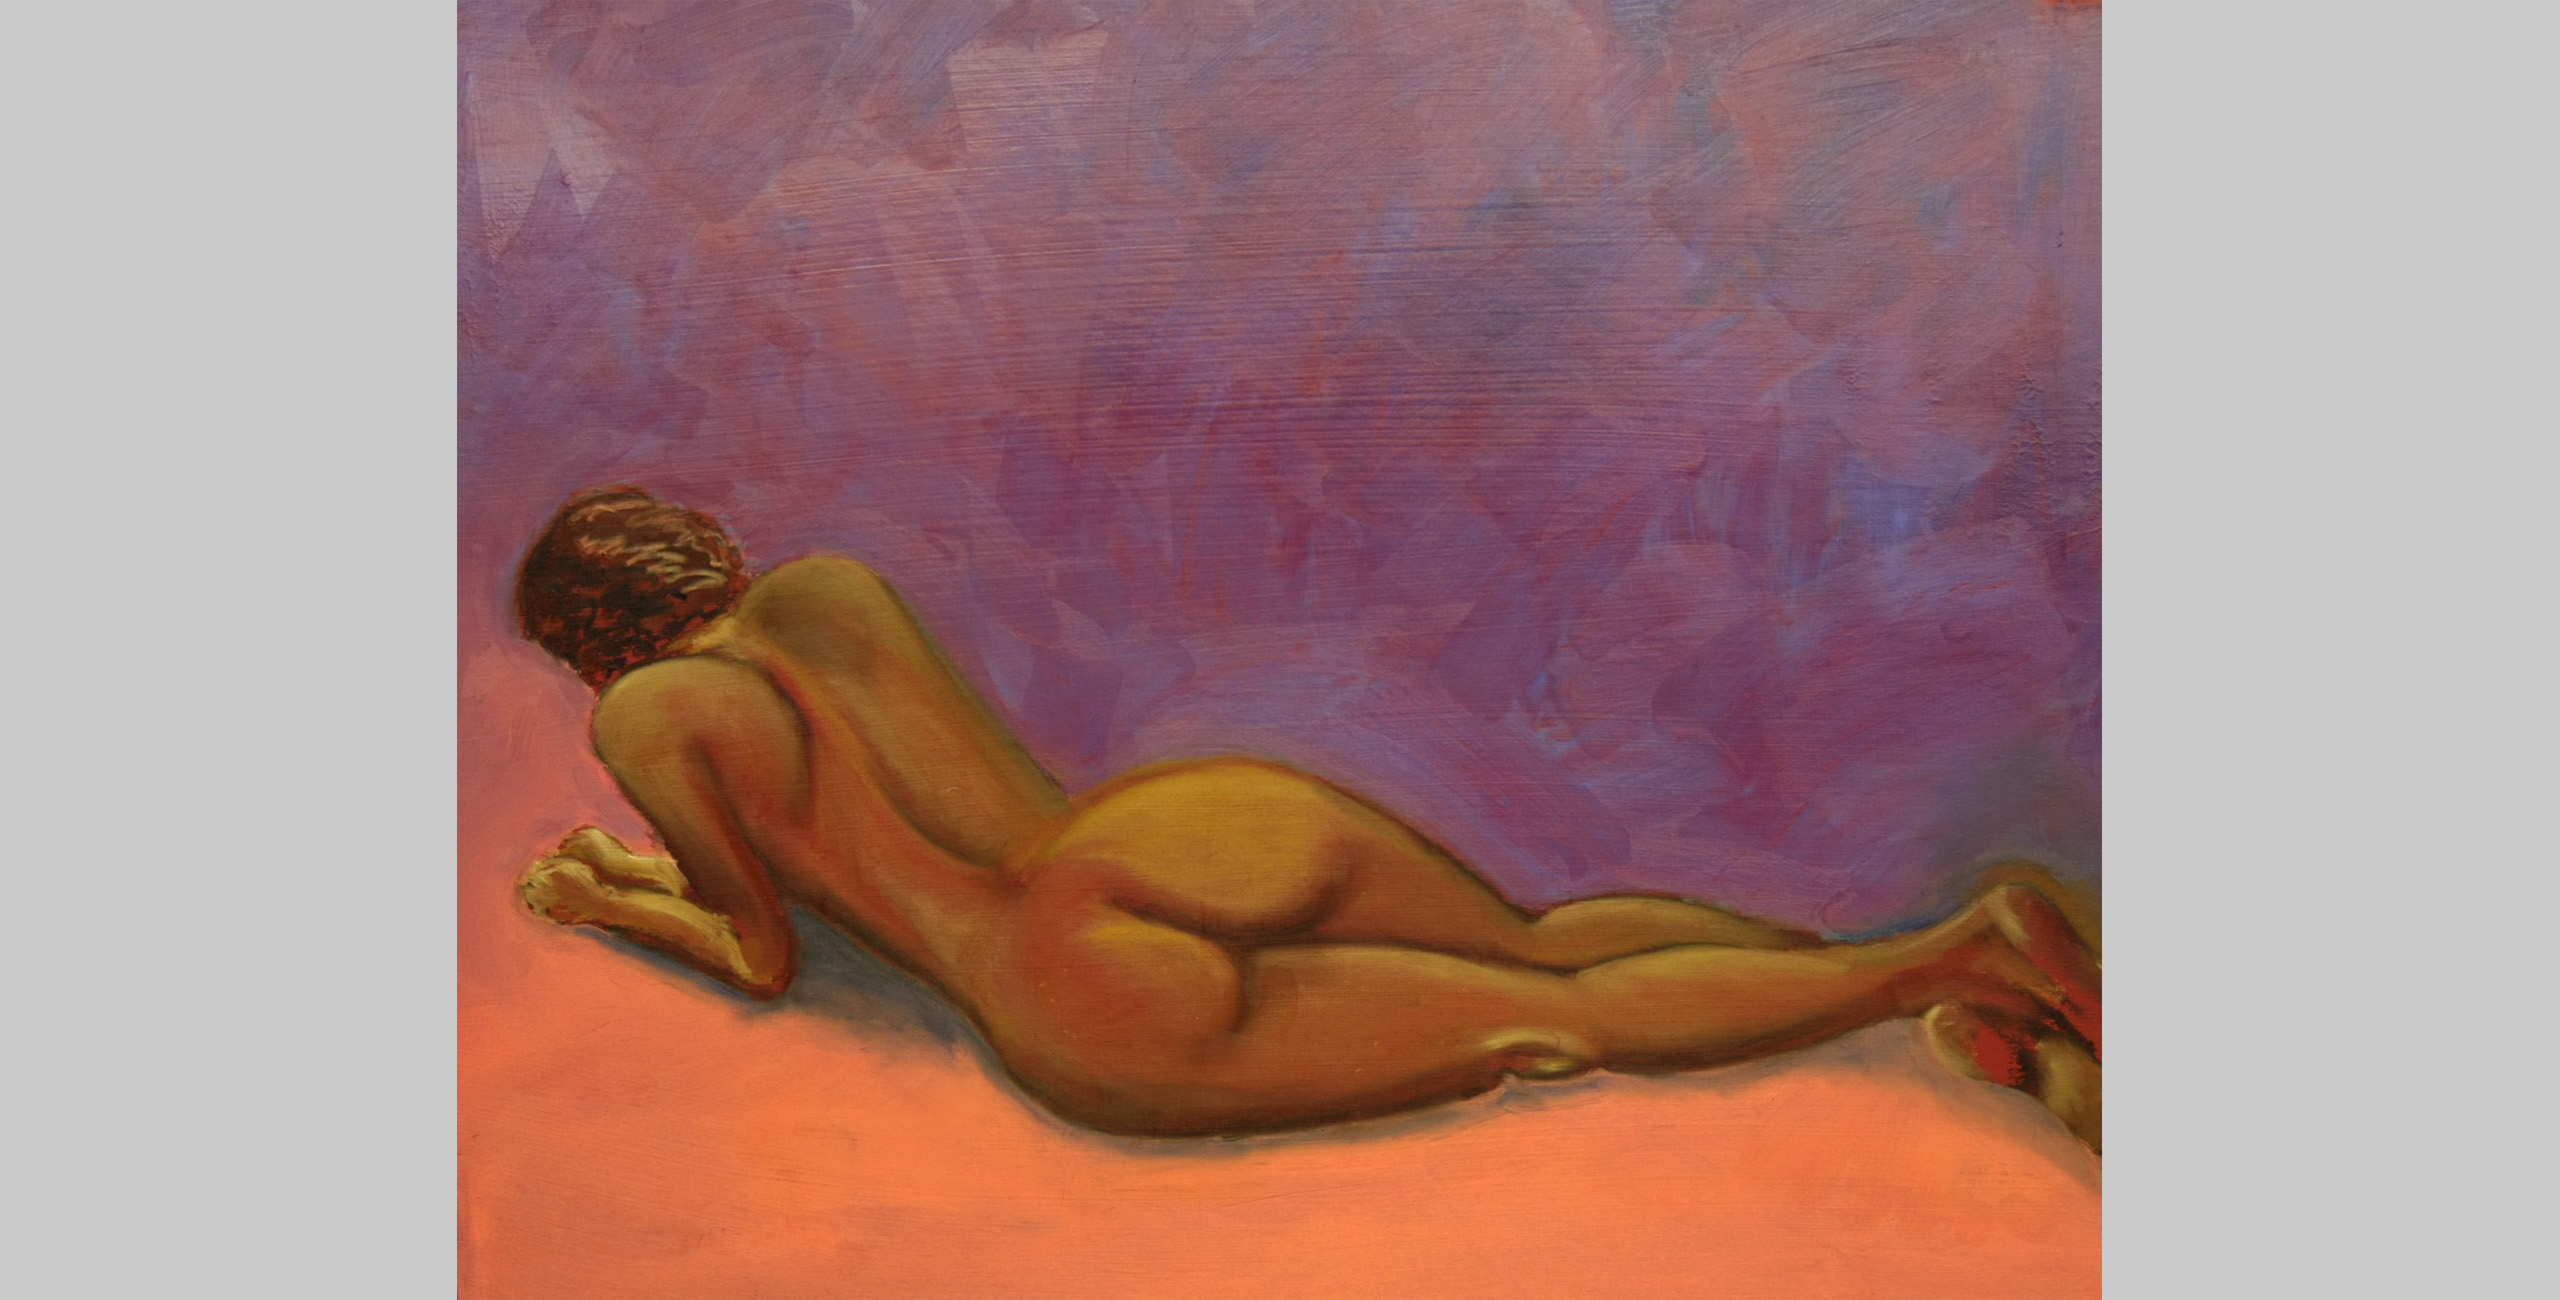 Reclining Nude, 2009, oil bar on mat board, 16 x 20 in.